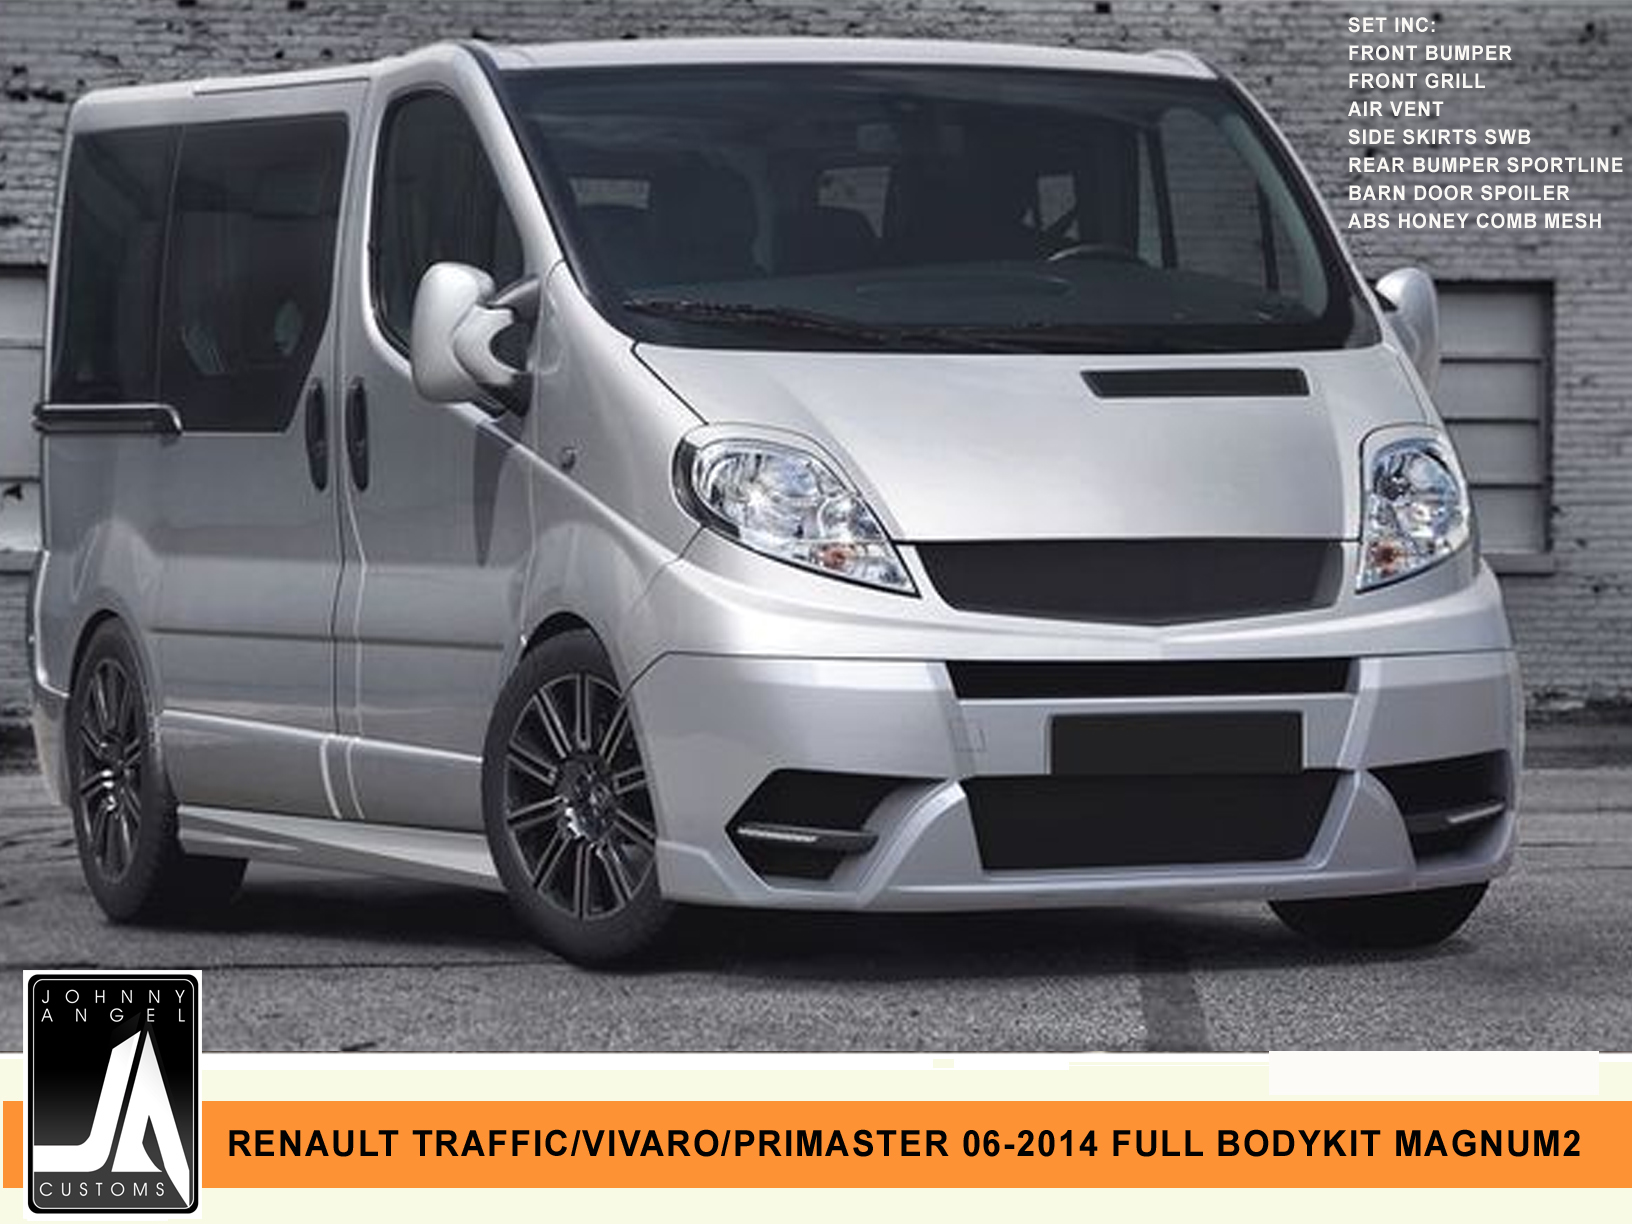 RENAULT TRAFFIC VIVARO PRIMASTER 06-2014 FULL BODYKIT MAGNUM2 By Johnny Angel Customs Pic 1